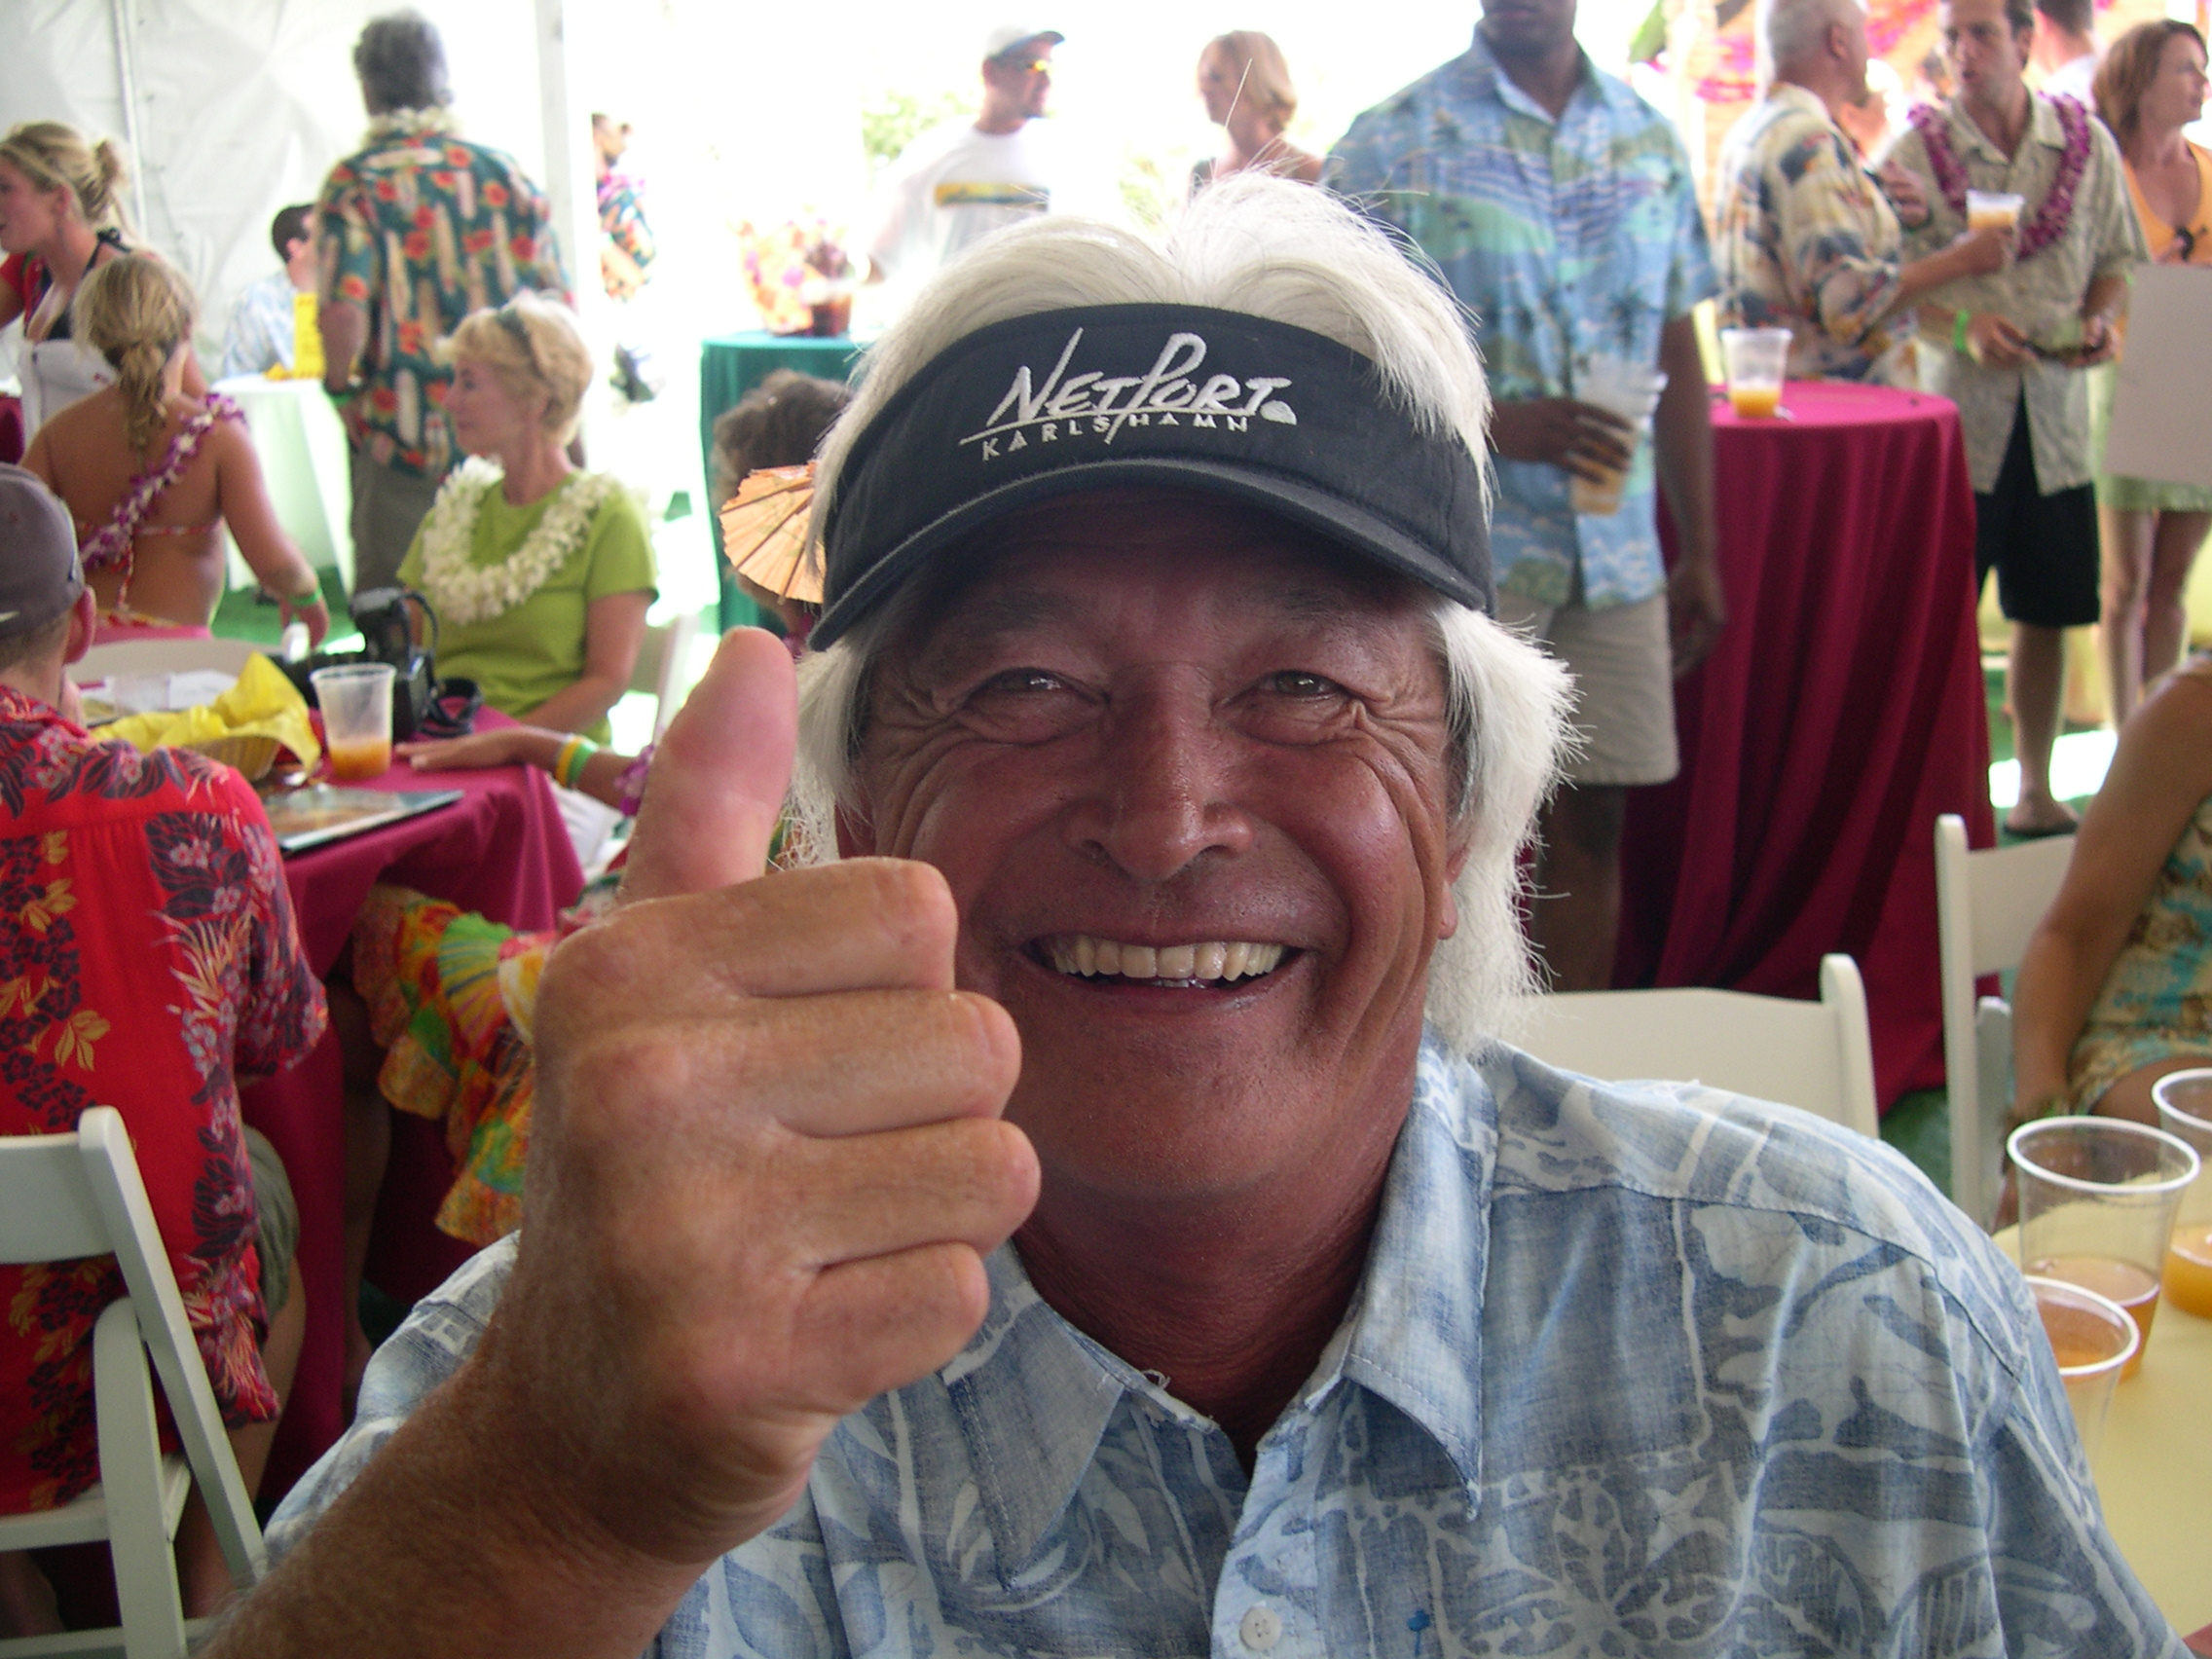 Waterspot: David Nuuhiwa, king of the '60s surfers